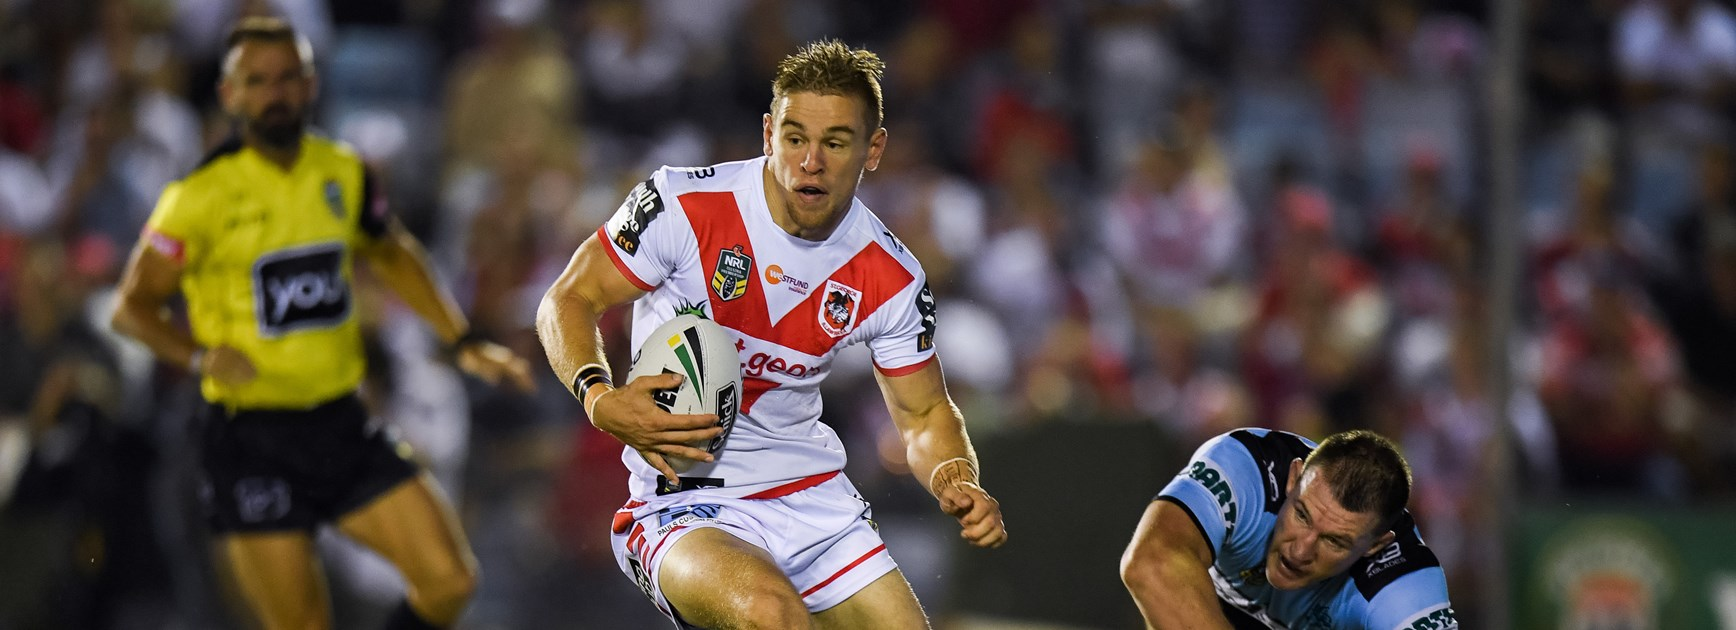 Dufty says Graham was right to chip him